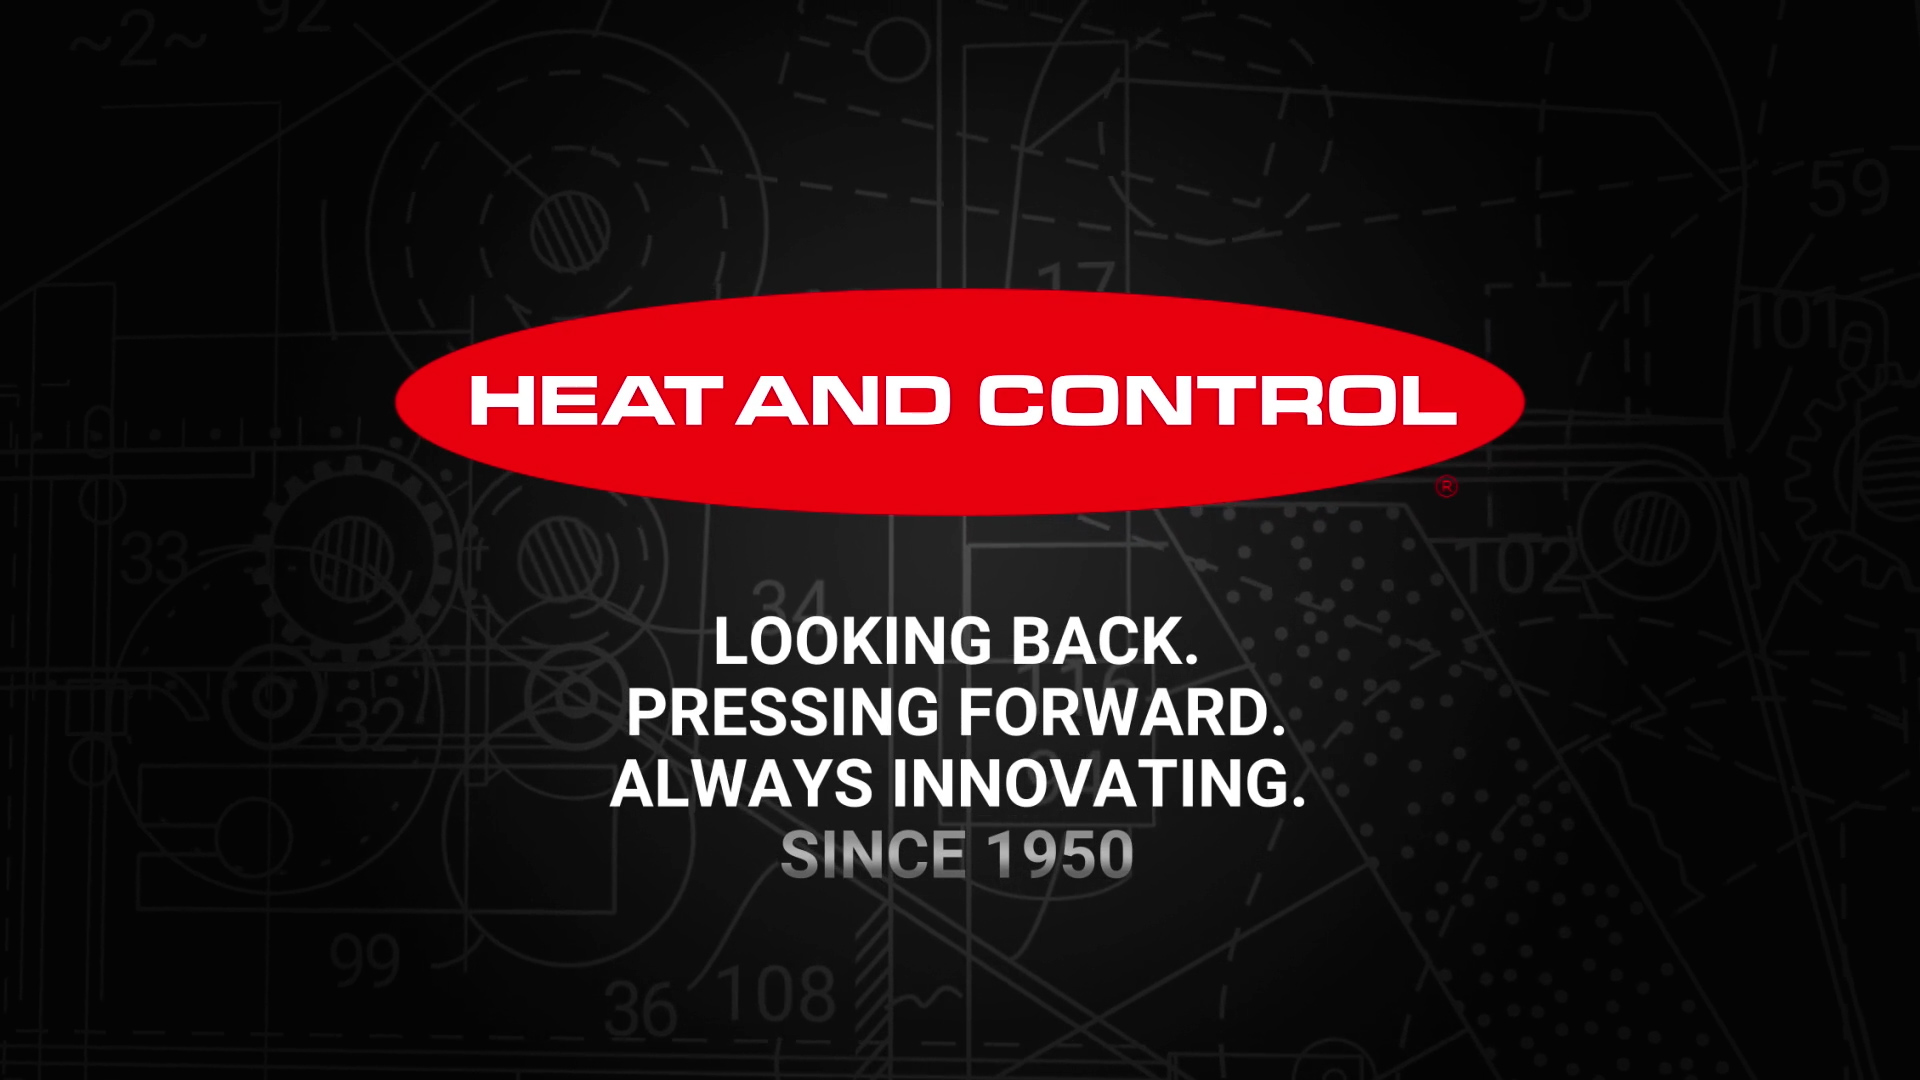 Heat and Control Corporate Video